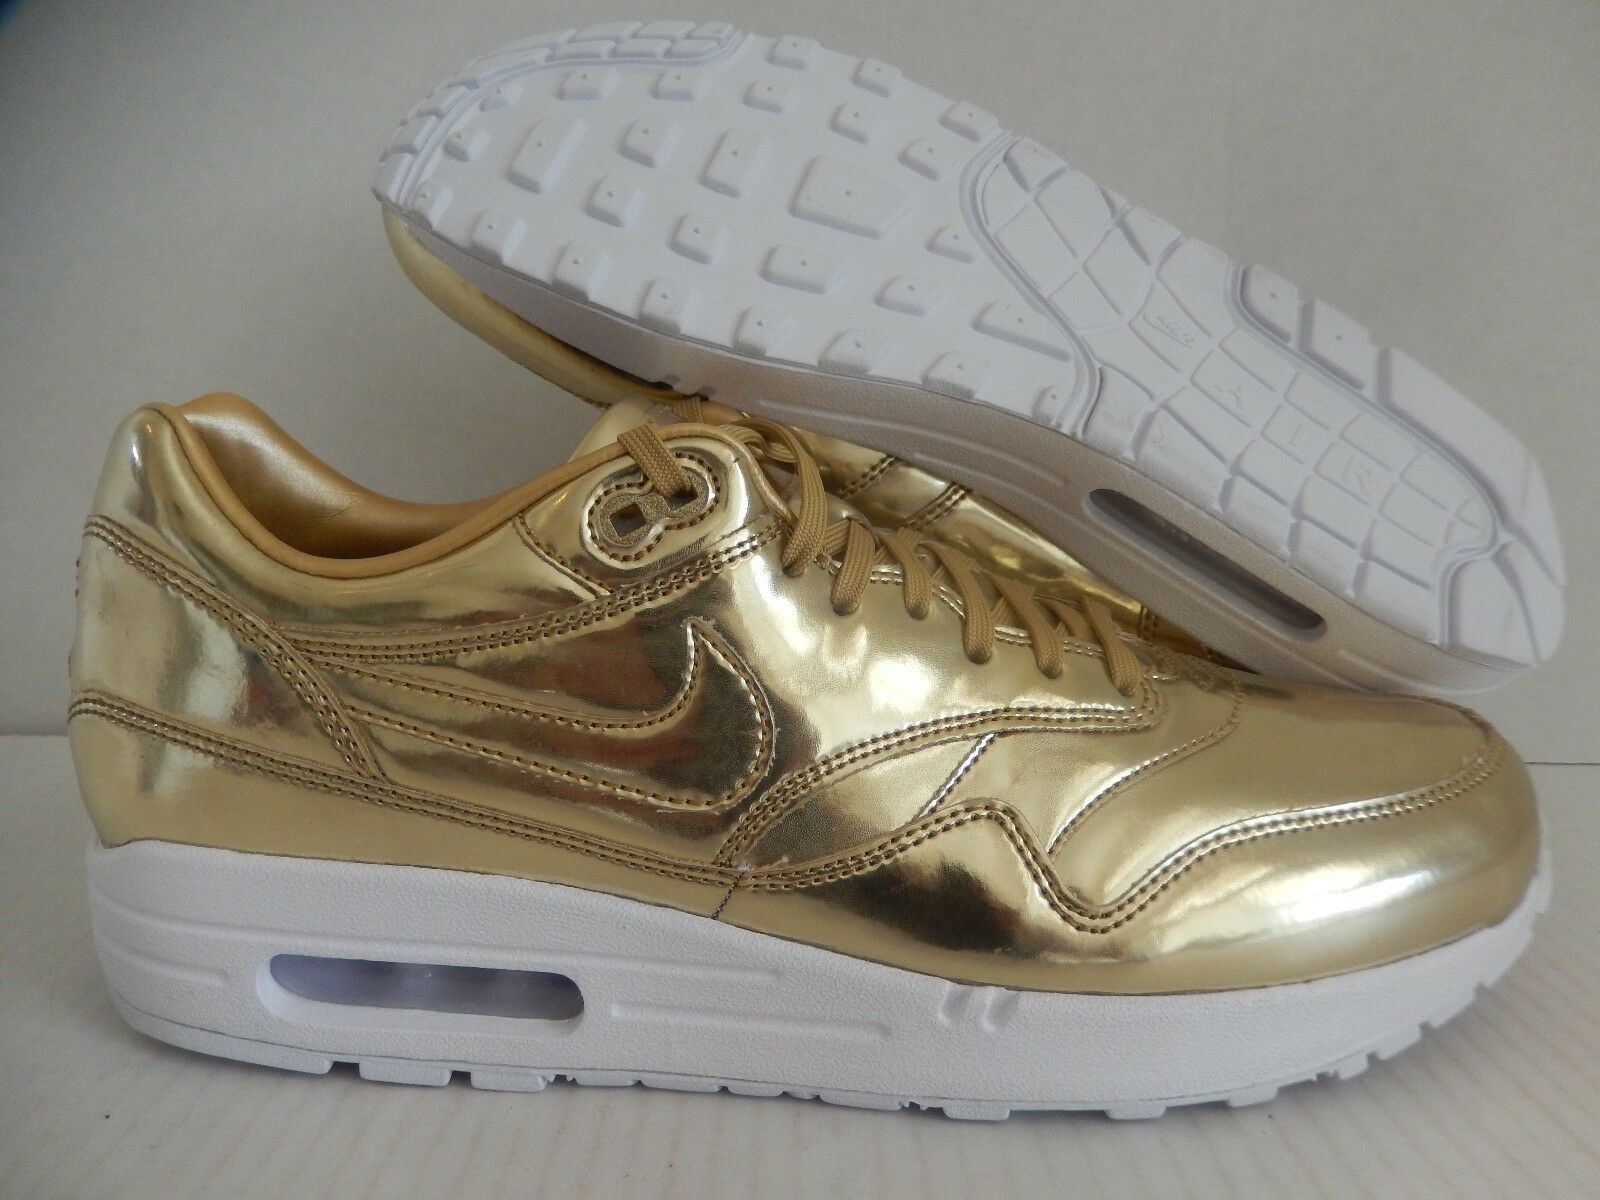 NIKE AIR MAX 1 PREMIUM ID LIQUID GOLD-WHITE SZ 10.5 [829357-991]